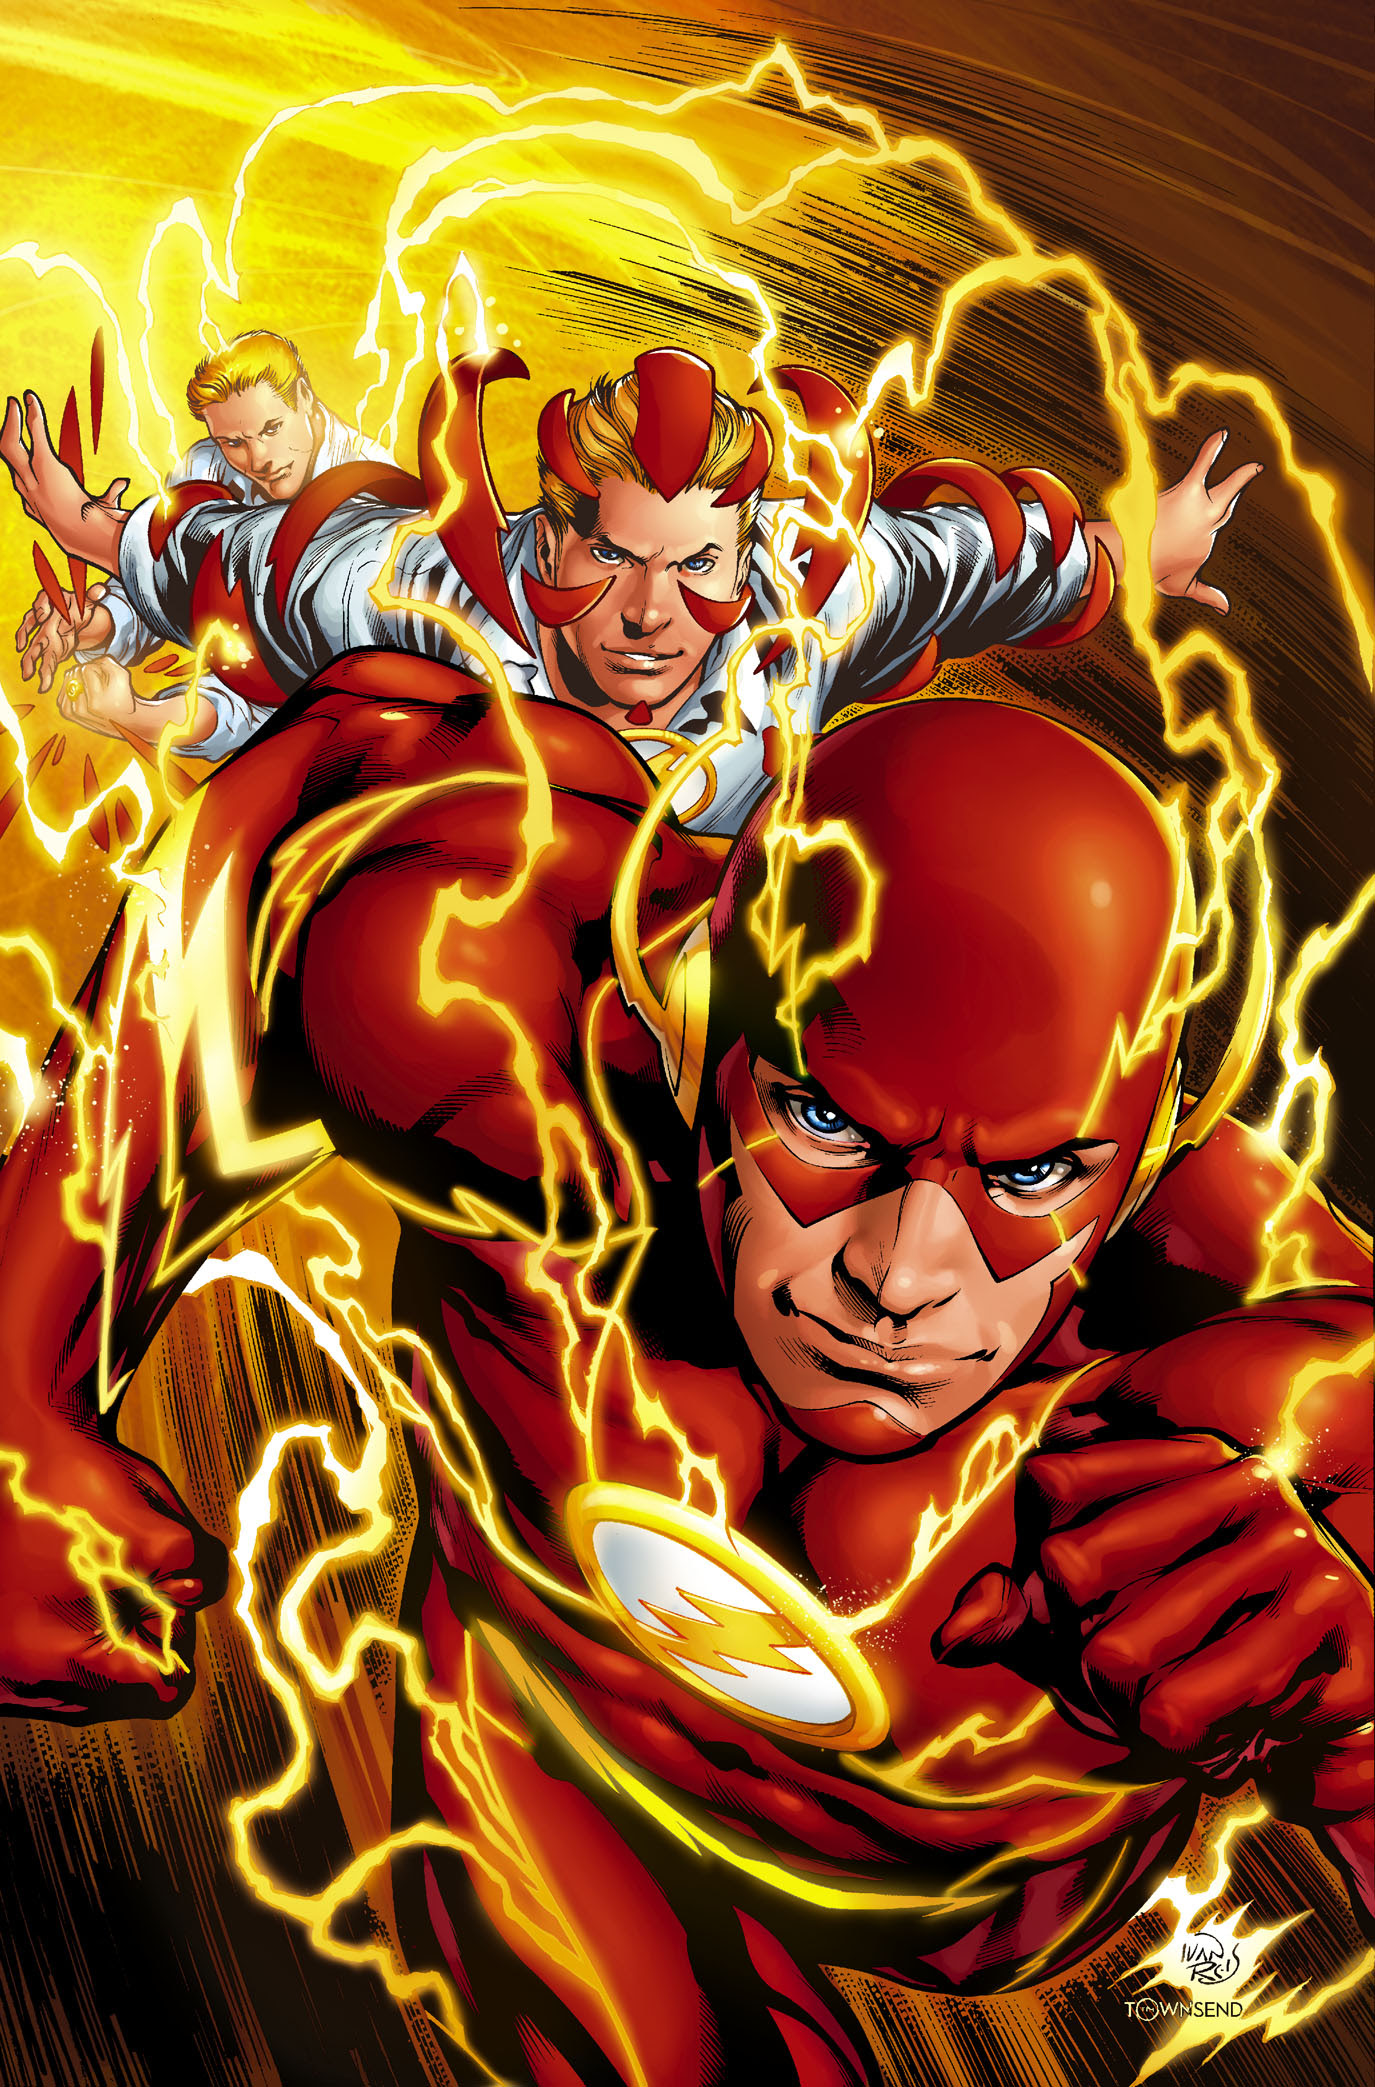 http://www.dccomics.com/sites/default/files/files/2011/08/Flash1_variant_asdfjhlkasdf6790.jpg